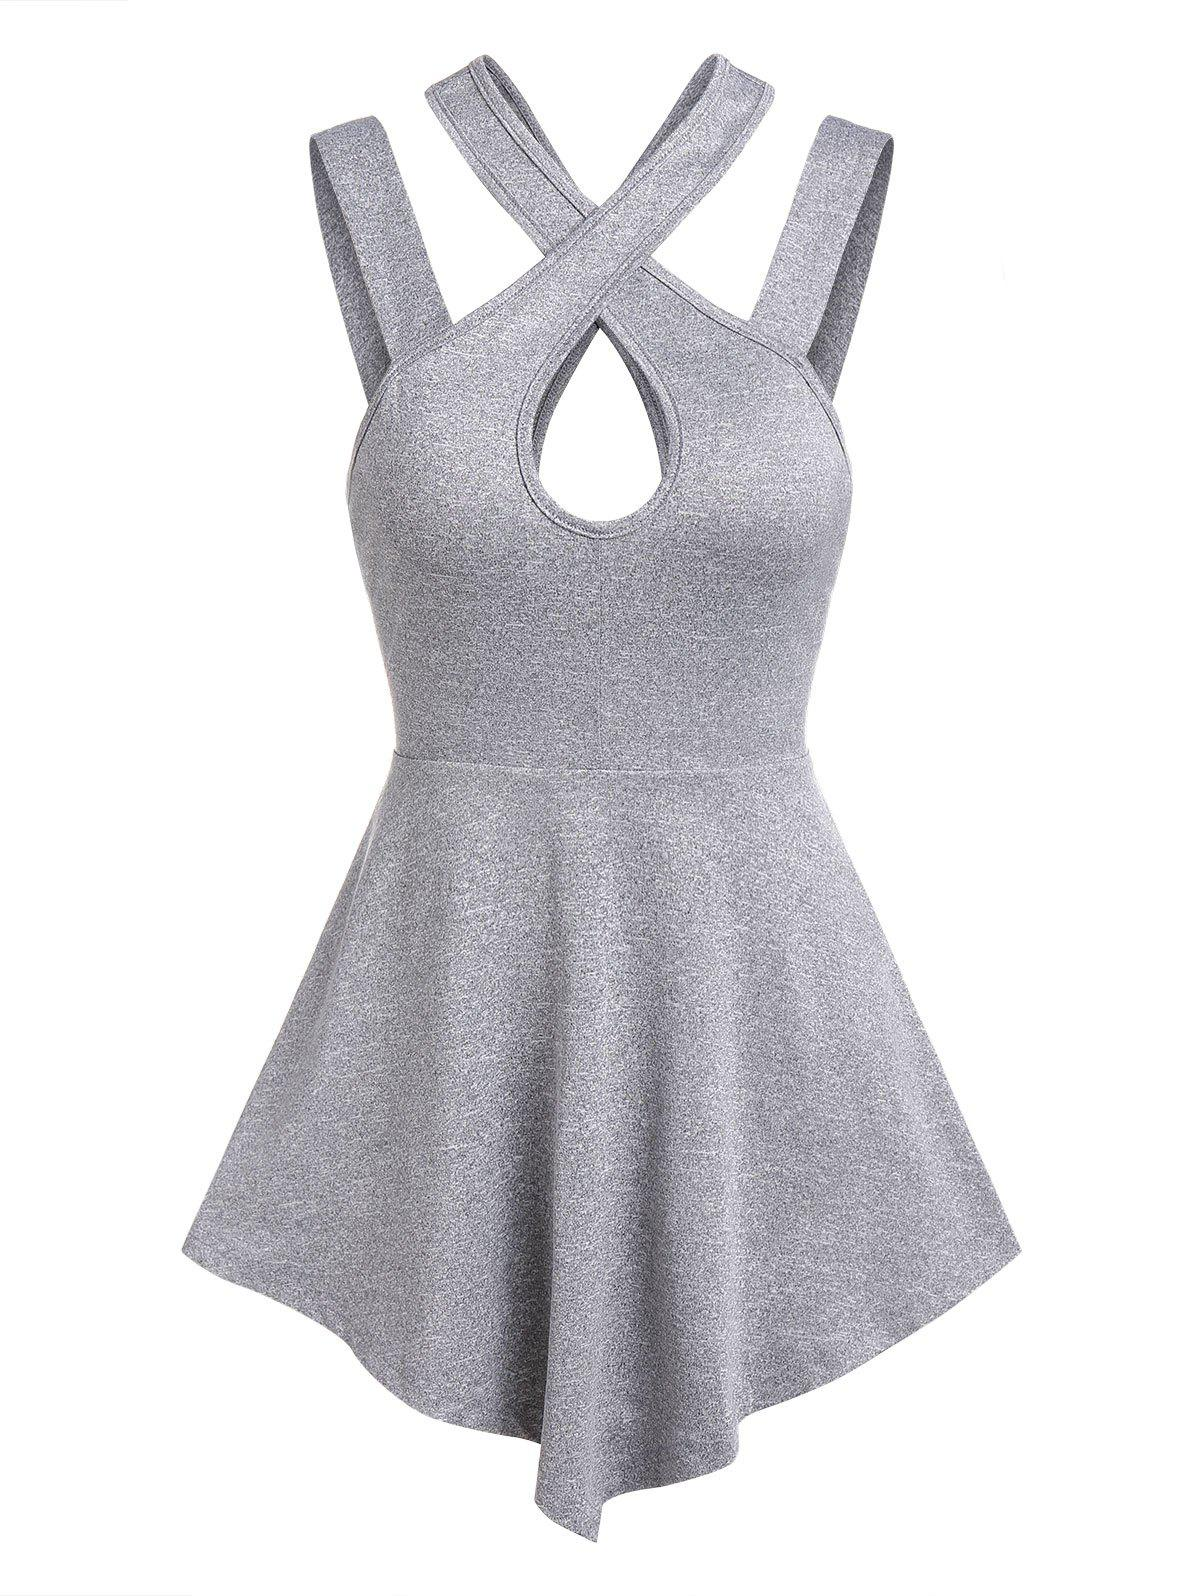 Keyhole Pointed Hem Marled Tank Top - LIGHT GRAY M